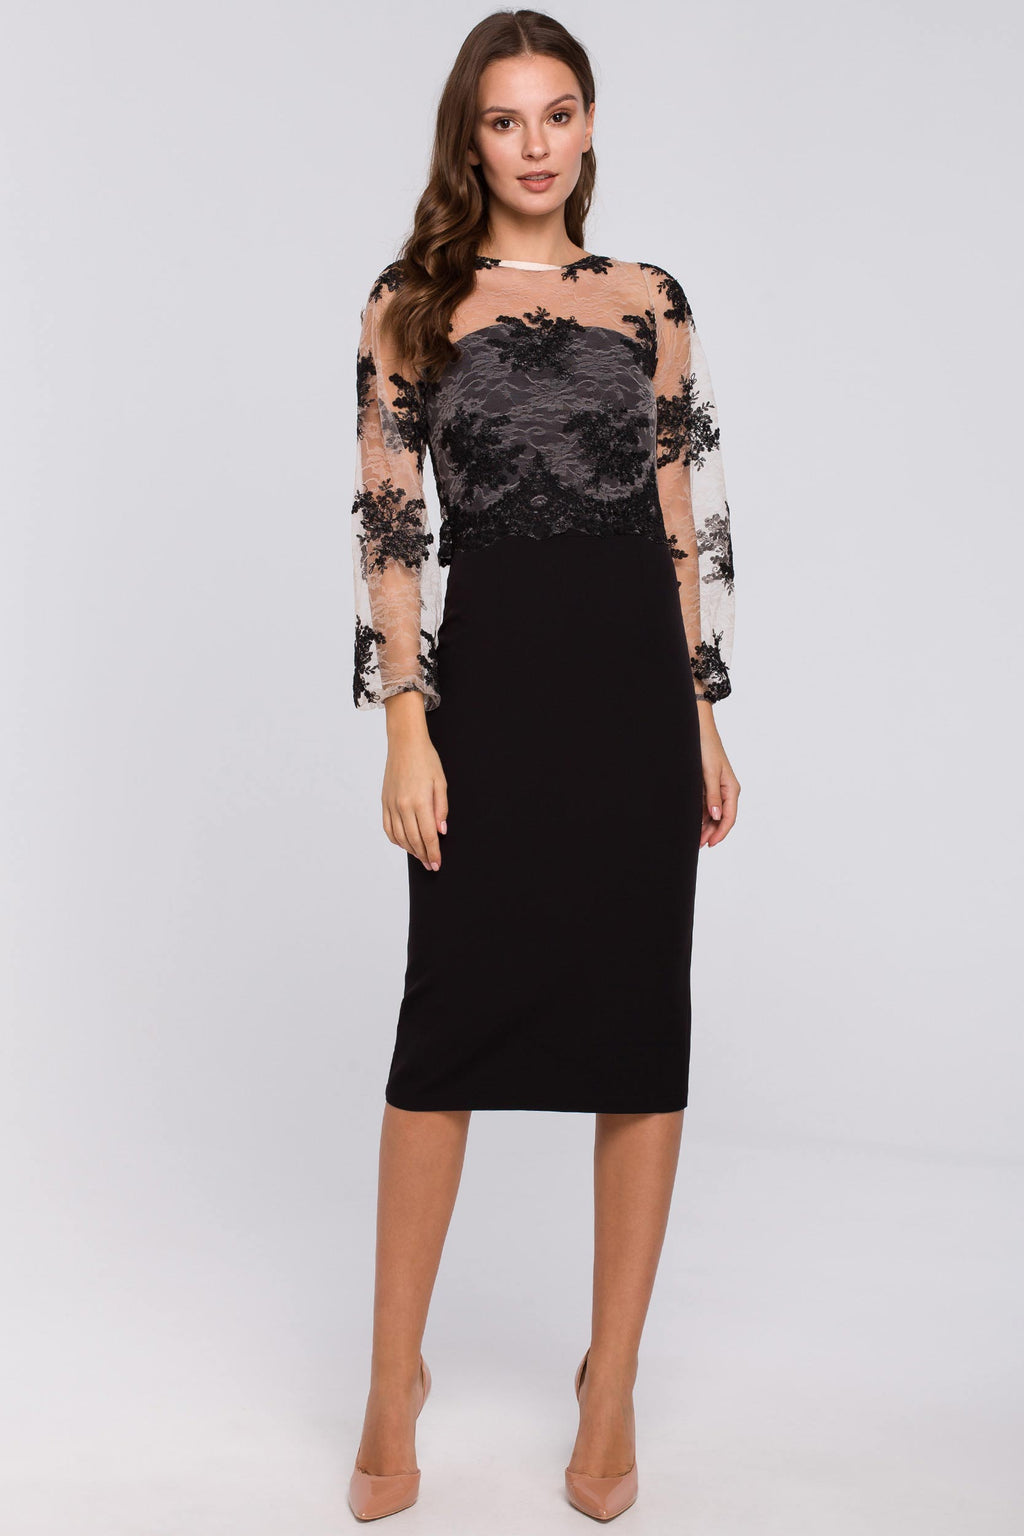 Black Pencil Dress With Guipure Lace Overlay Top - So Chic Boutique